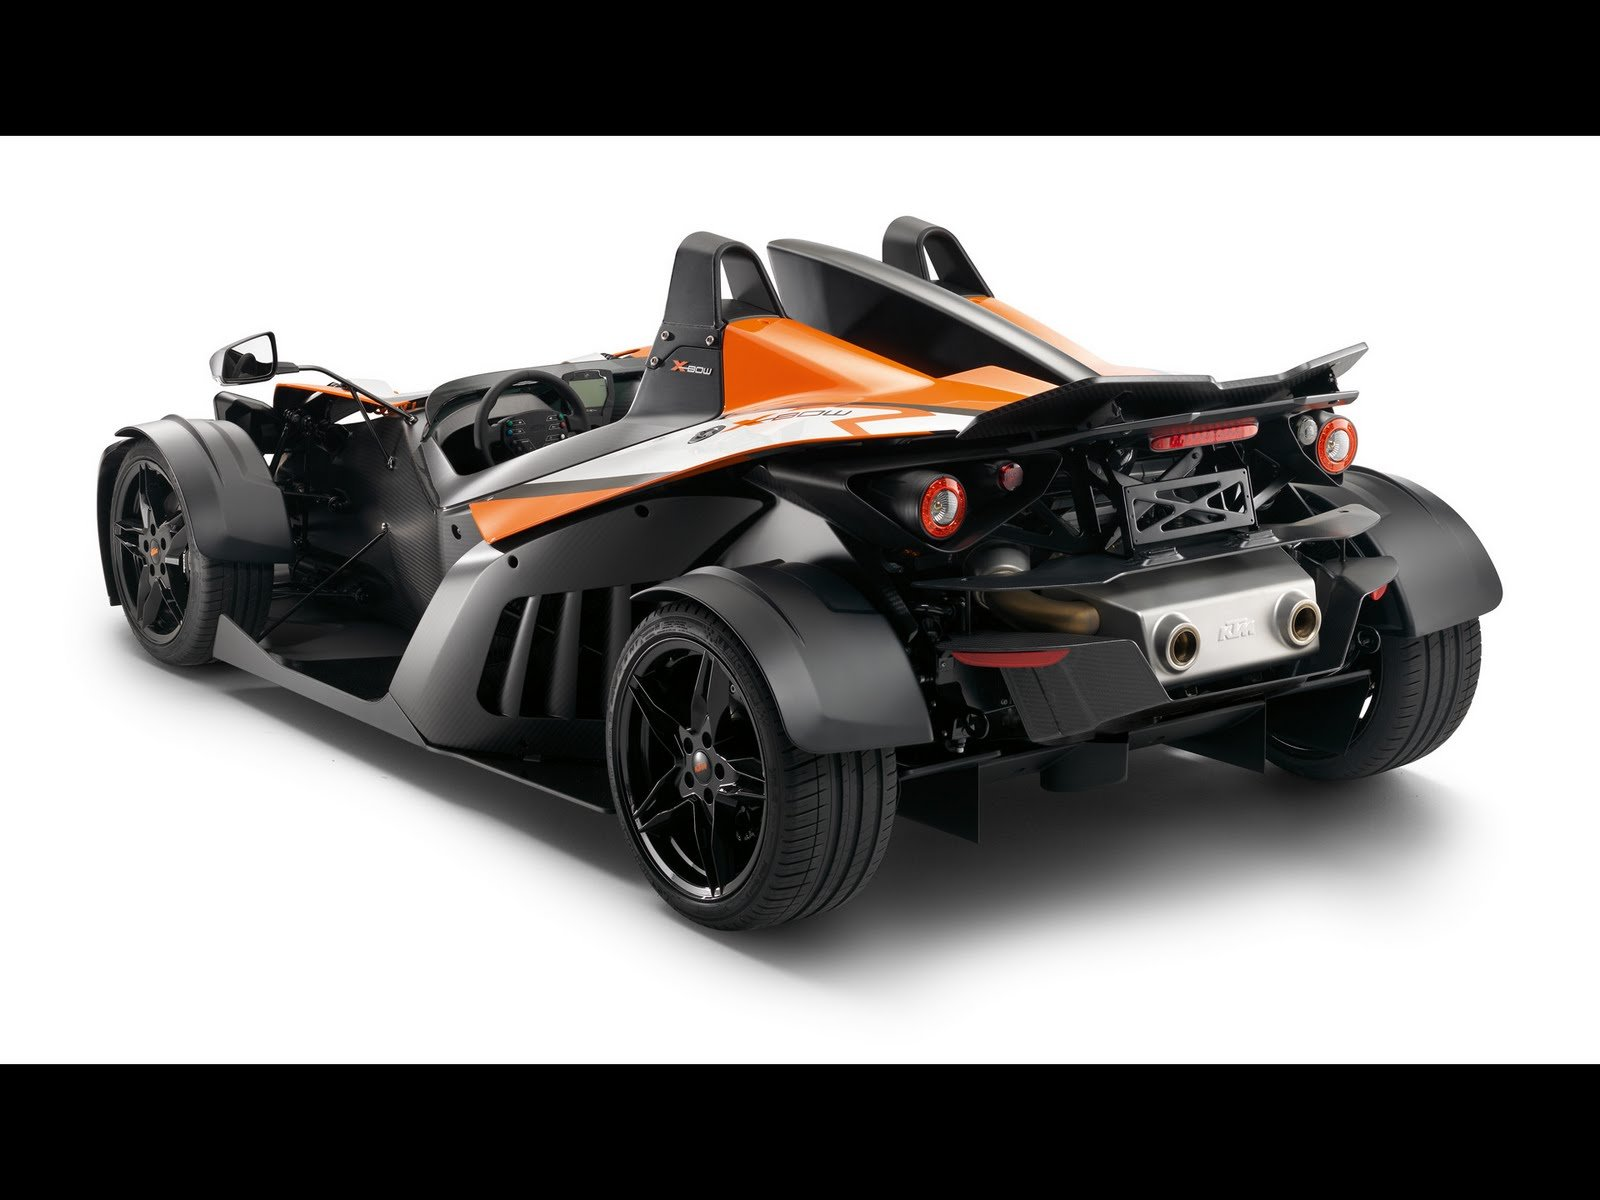 New Cars Hd Wallpapers 2011 Ktm X Bow R On This Month